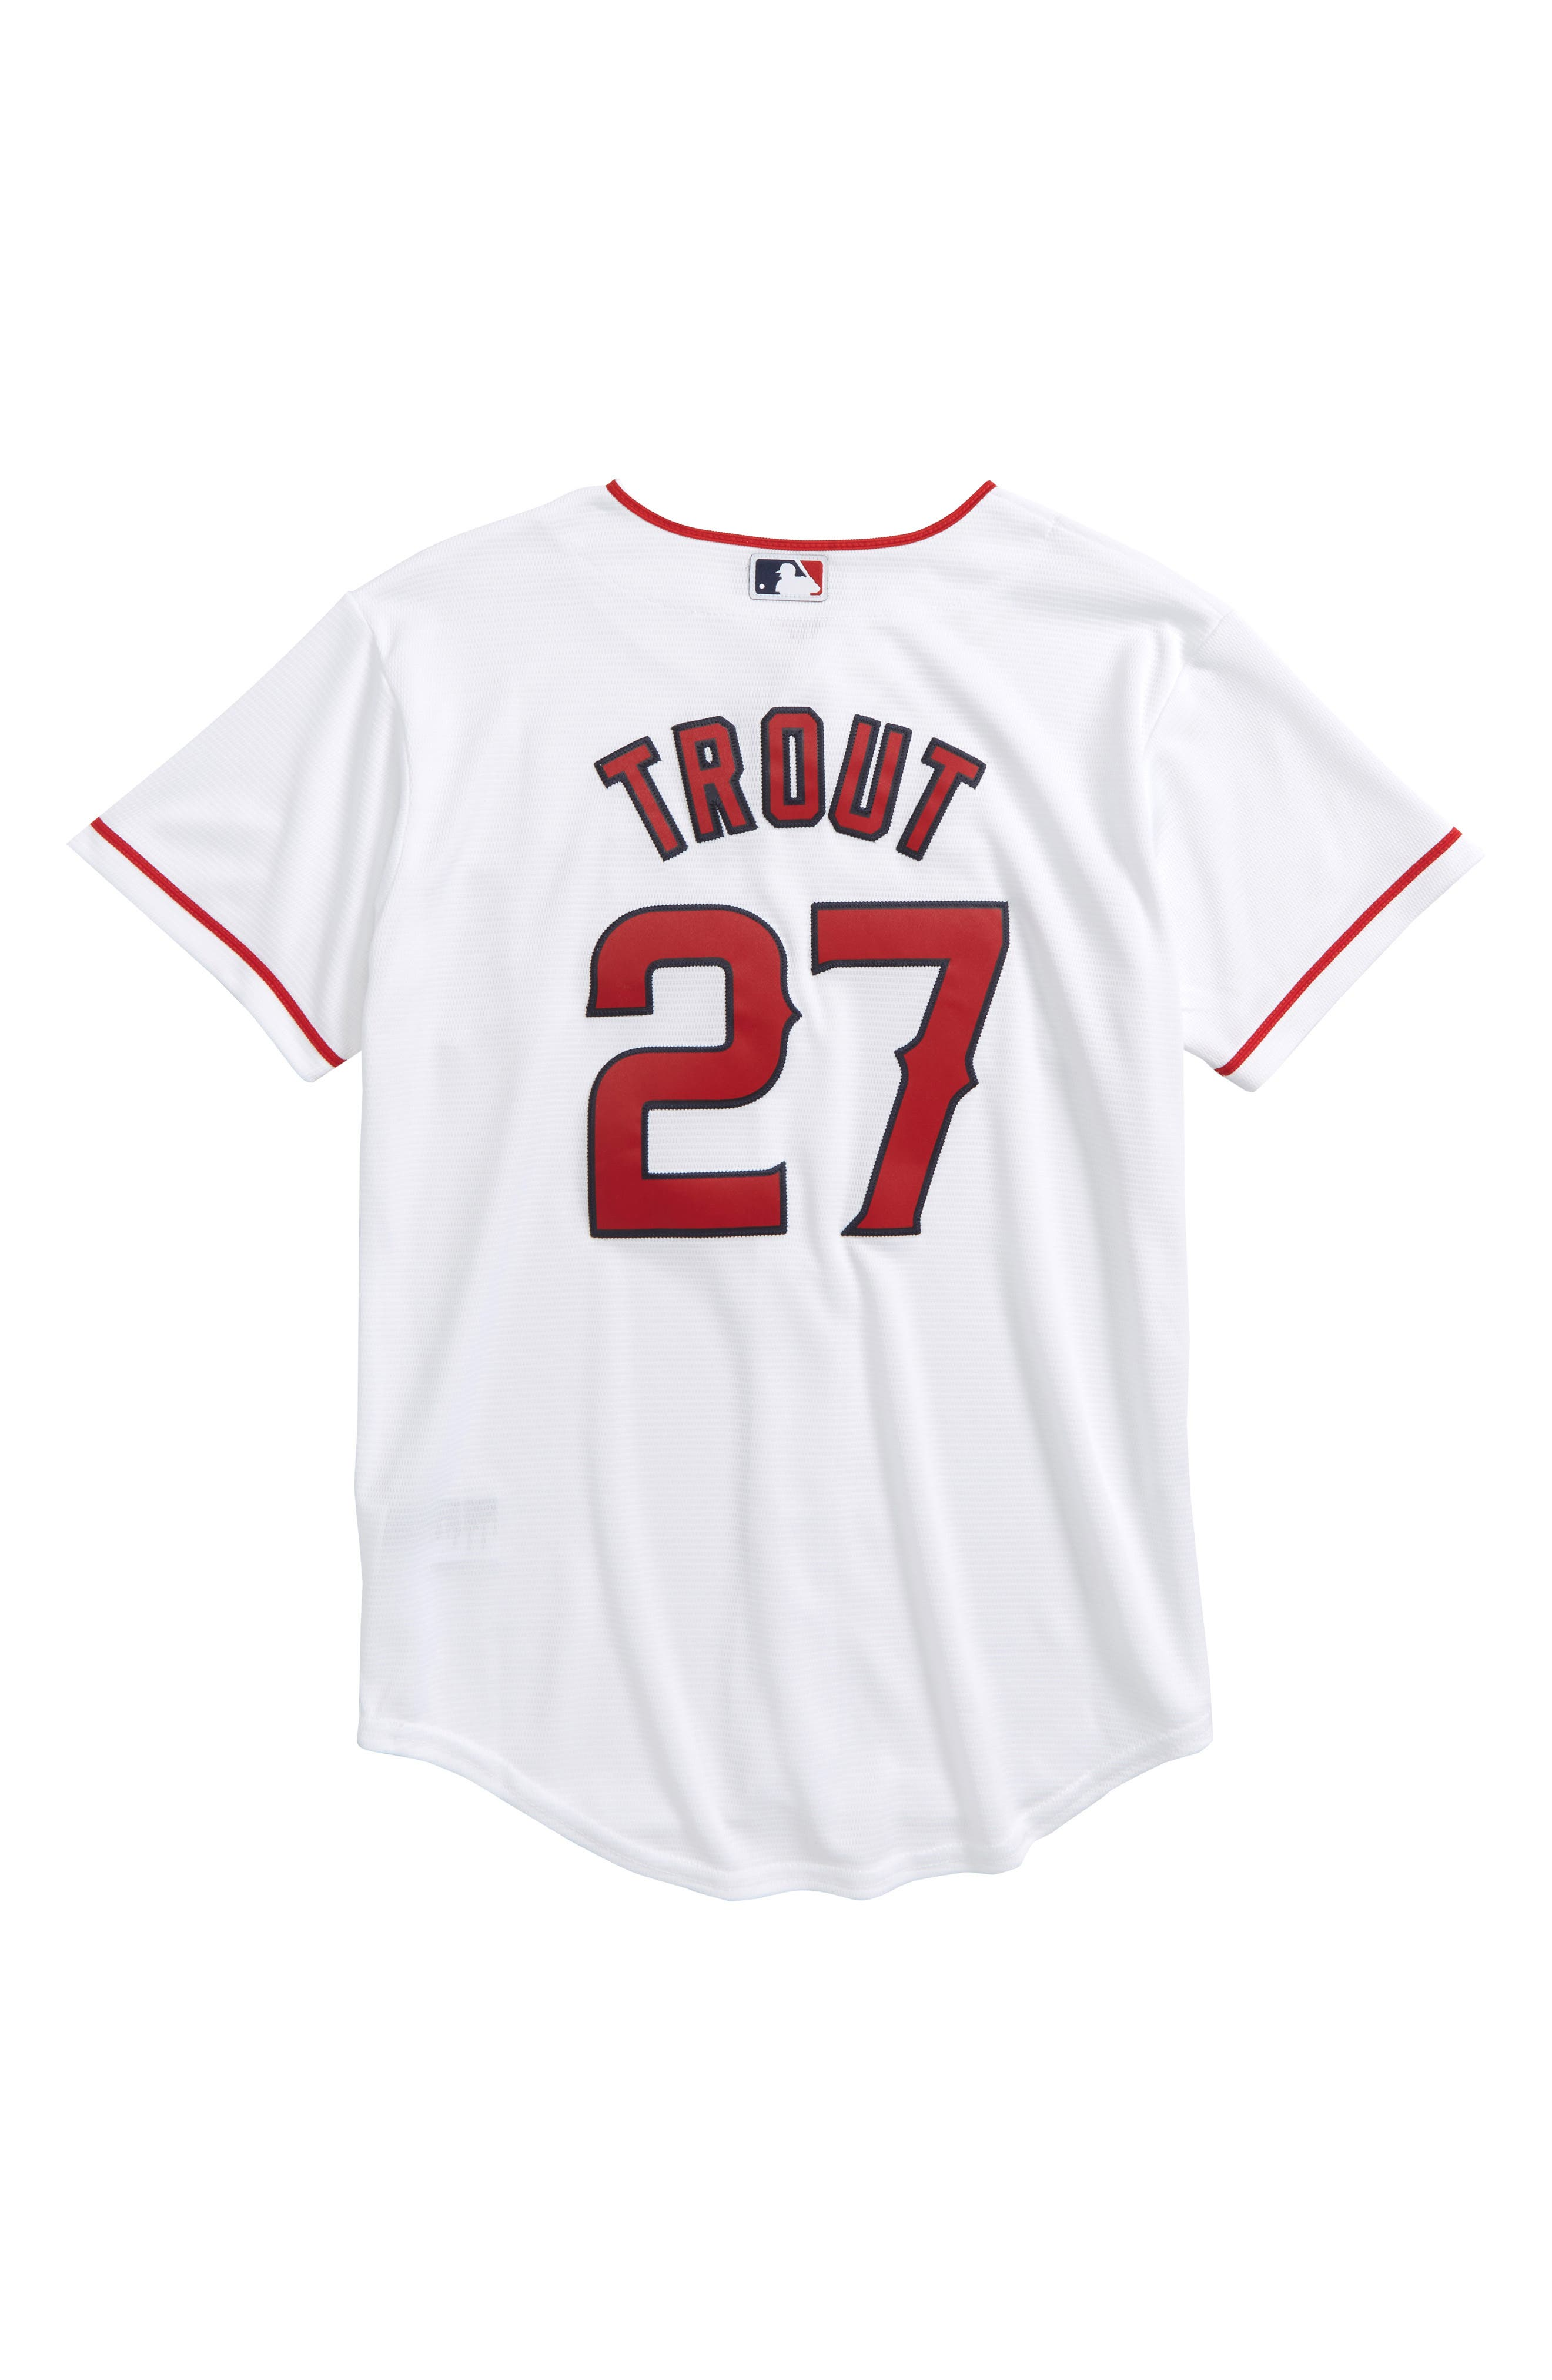 Los Angeles Angels - Mike Trout Baseball Jersey,                             Alternate thumbnail 2, color,                             White